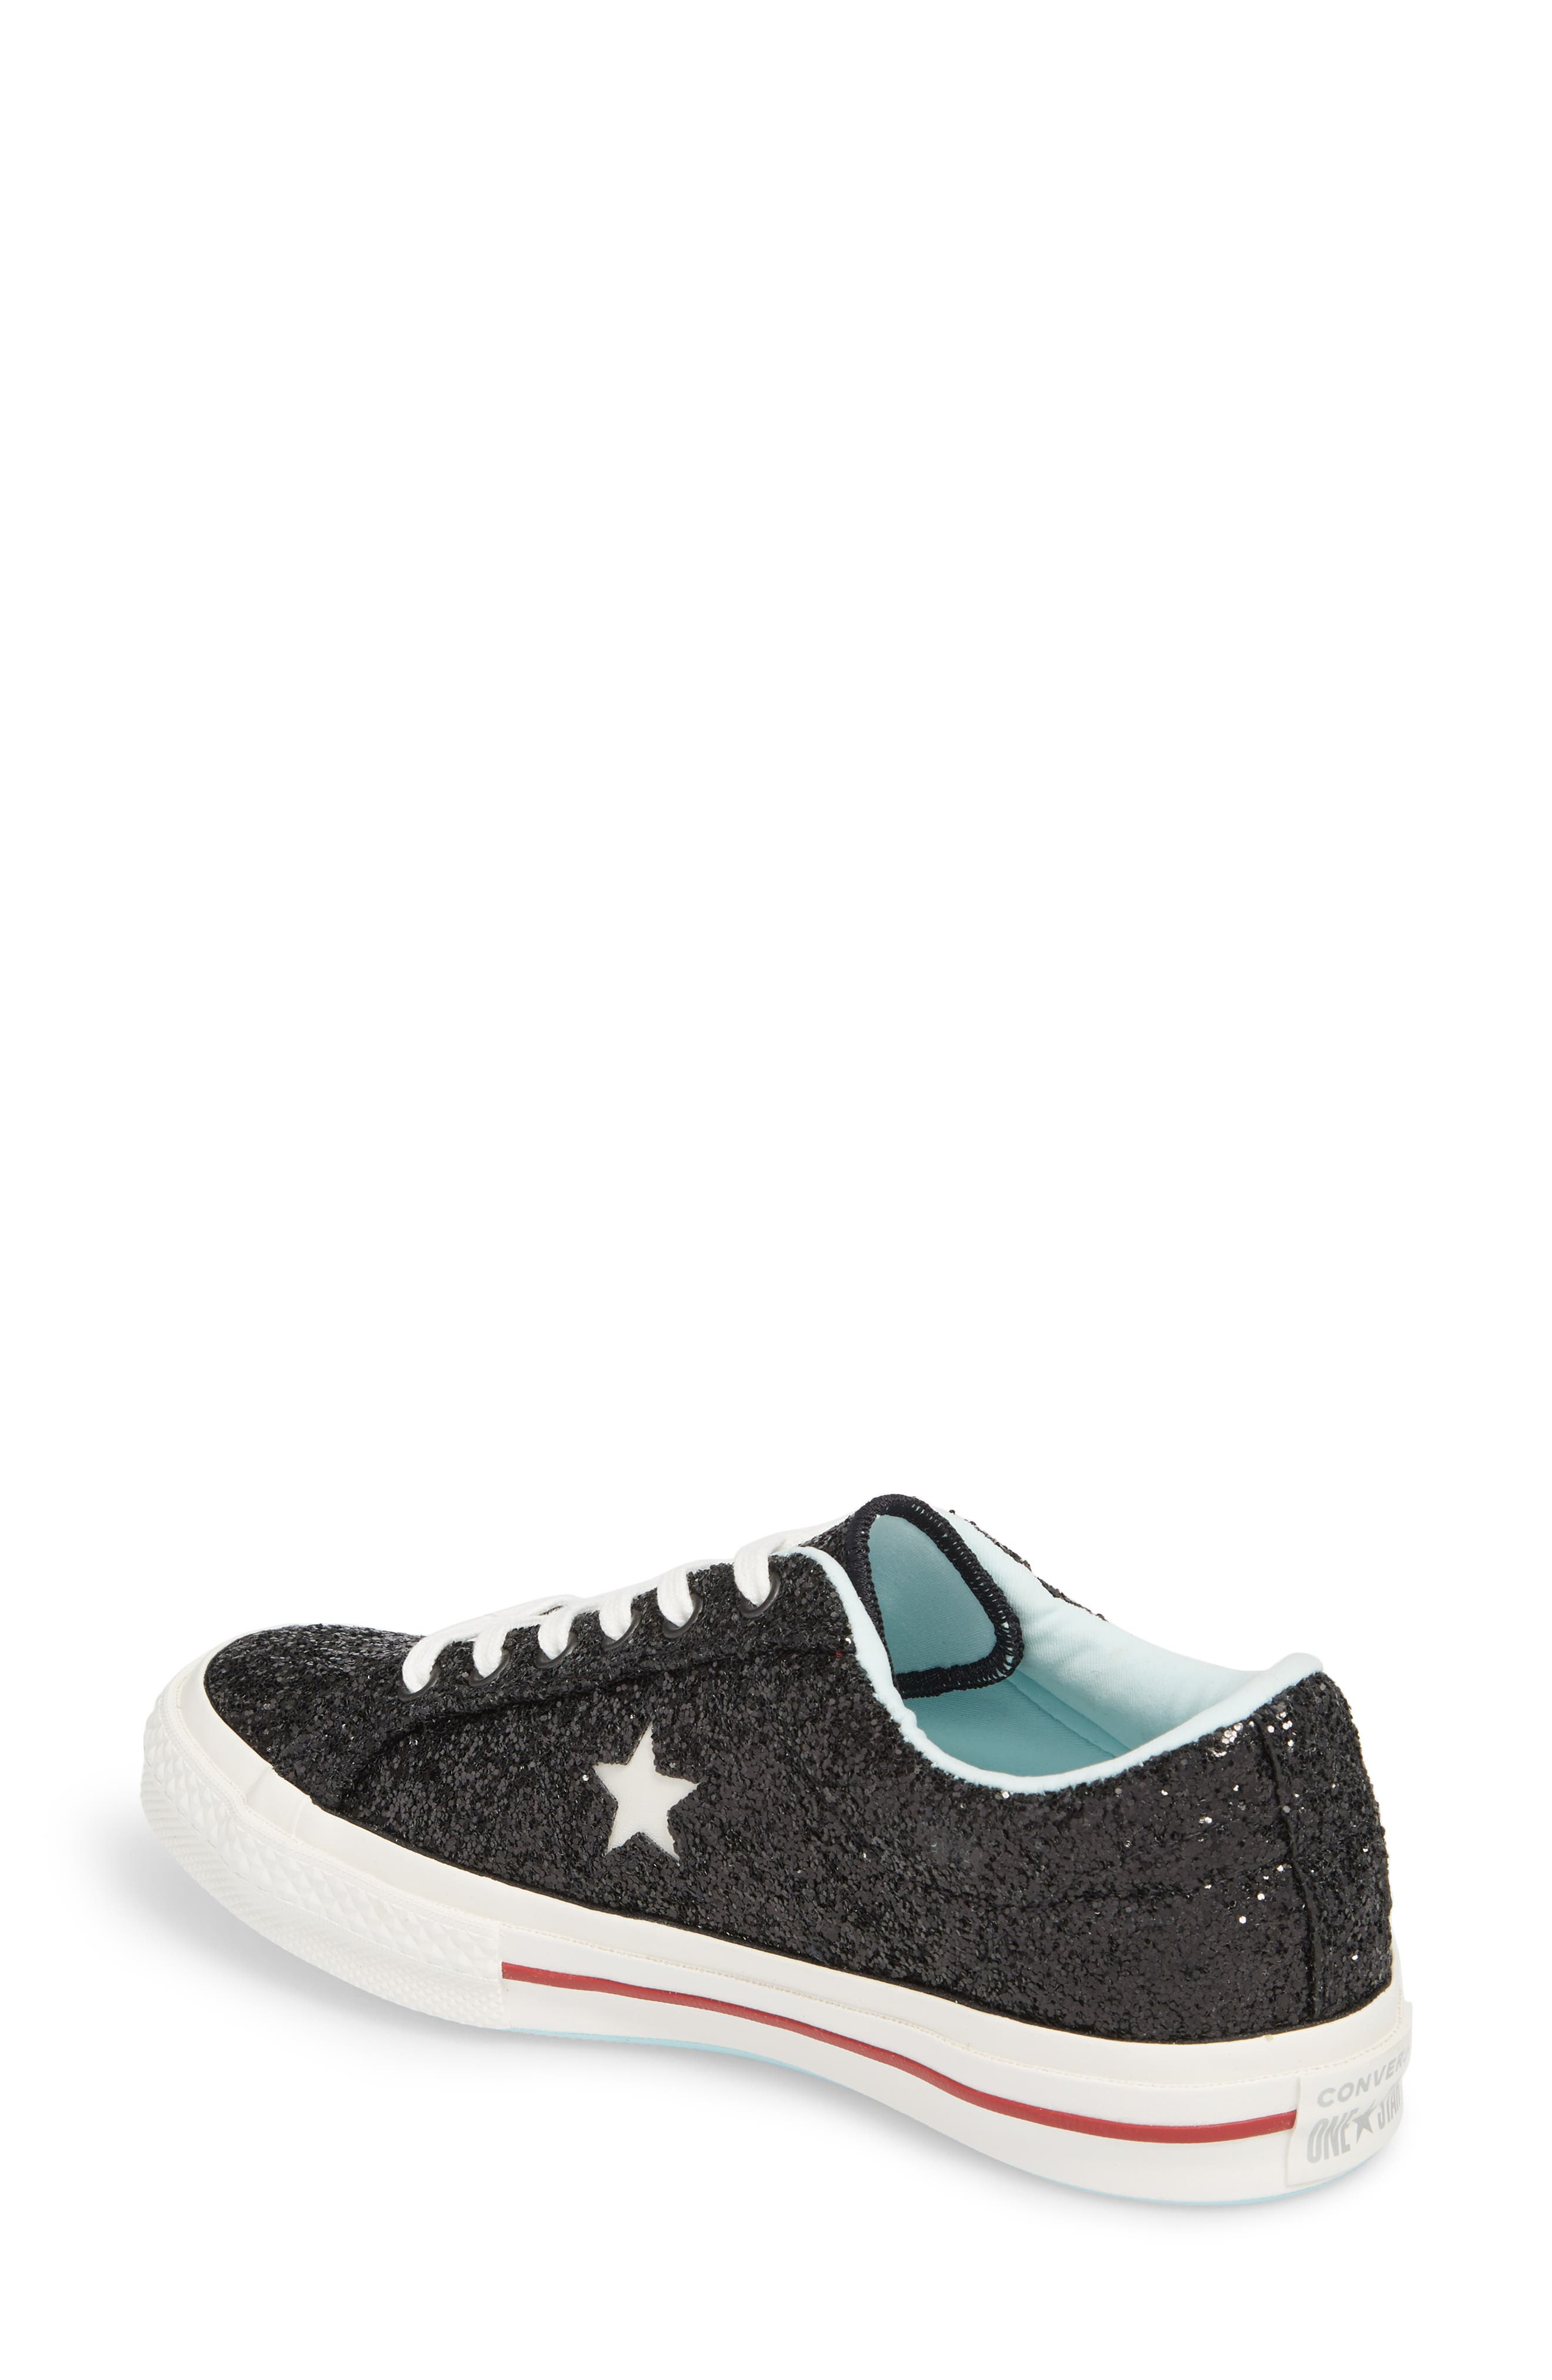 x Chiara Ferragni One Star Ox Sneaker,                             Alternate thumbnail 2, color,                             001